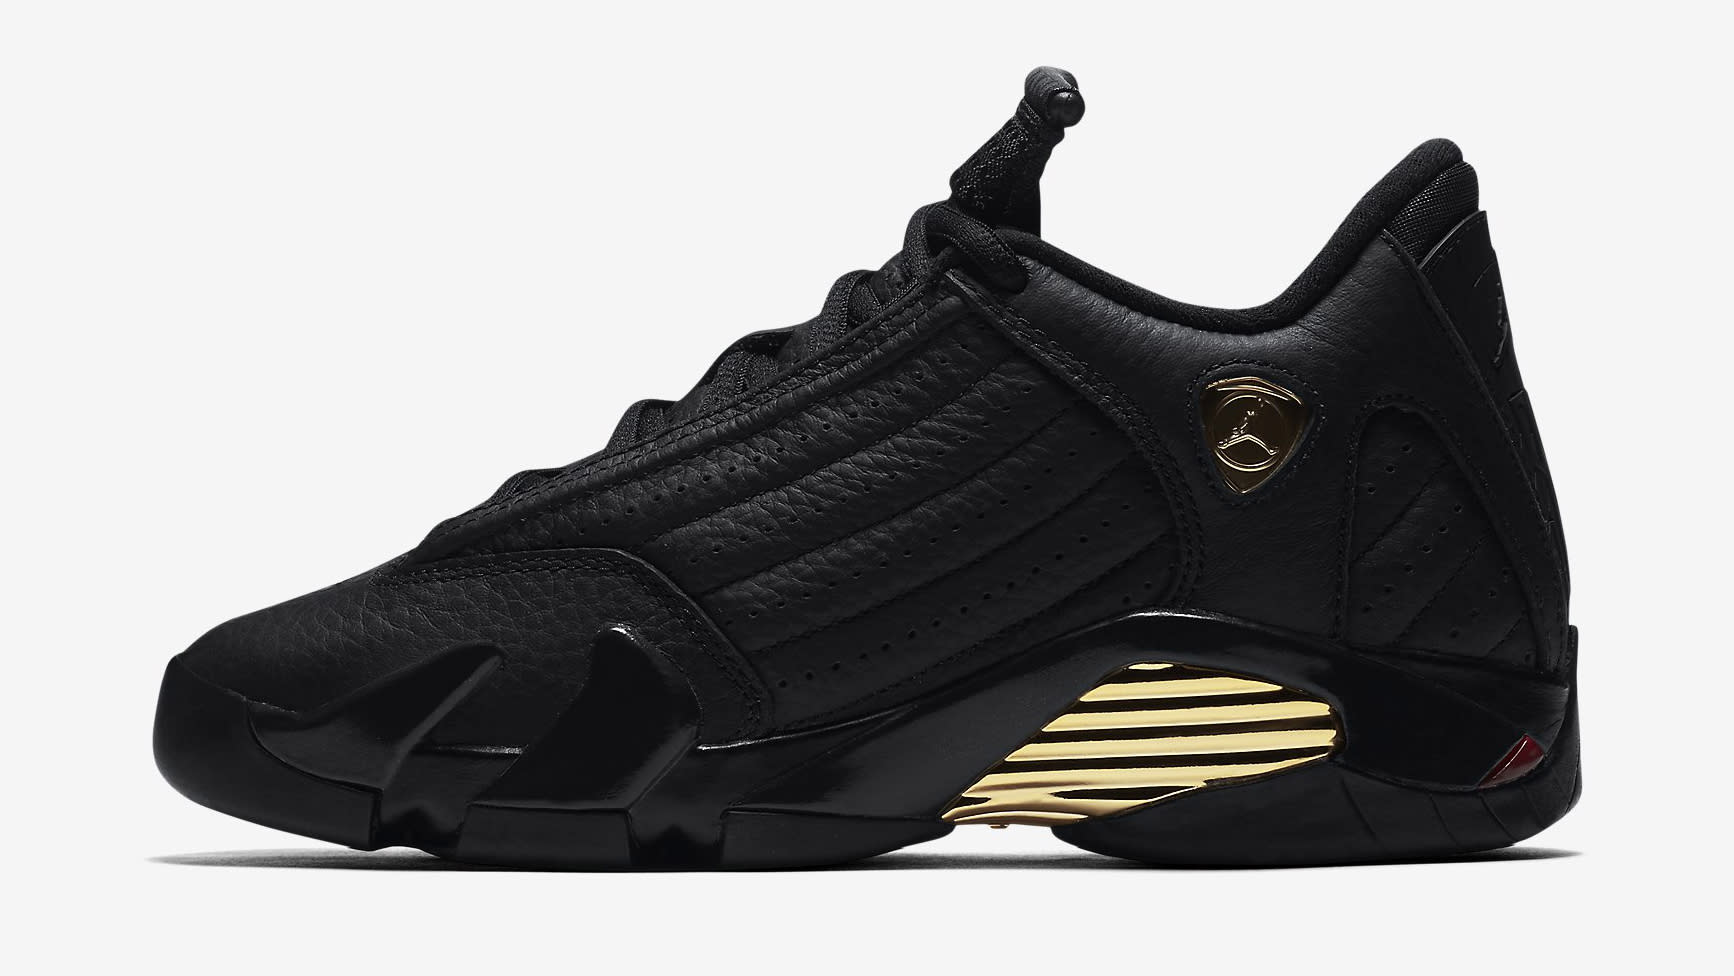 DMP Air Jordan 14 897561-900 Profile